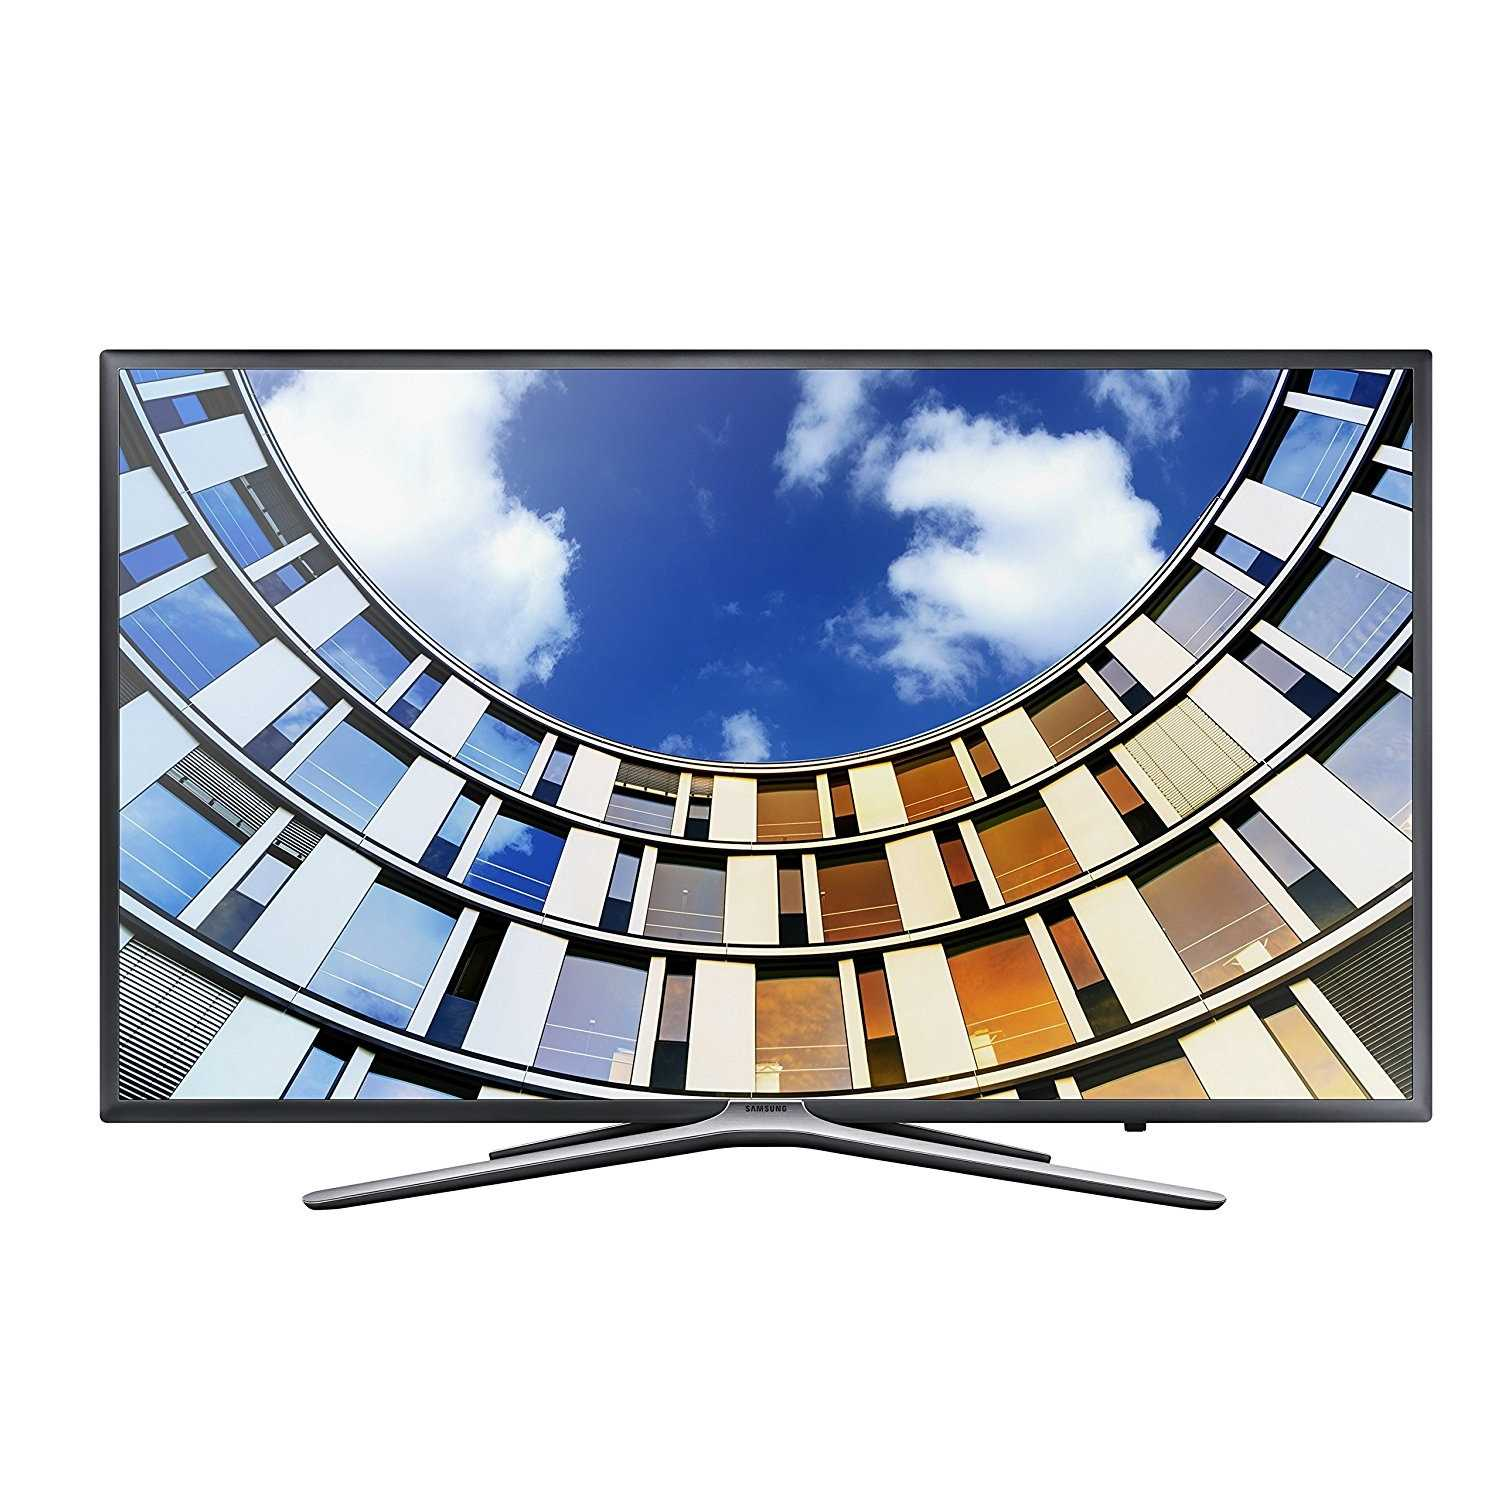 Samsung 55M5570 55 Inch Full HD LED Television